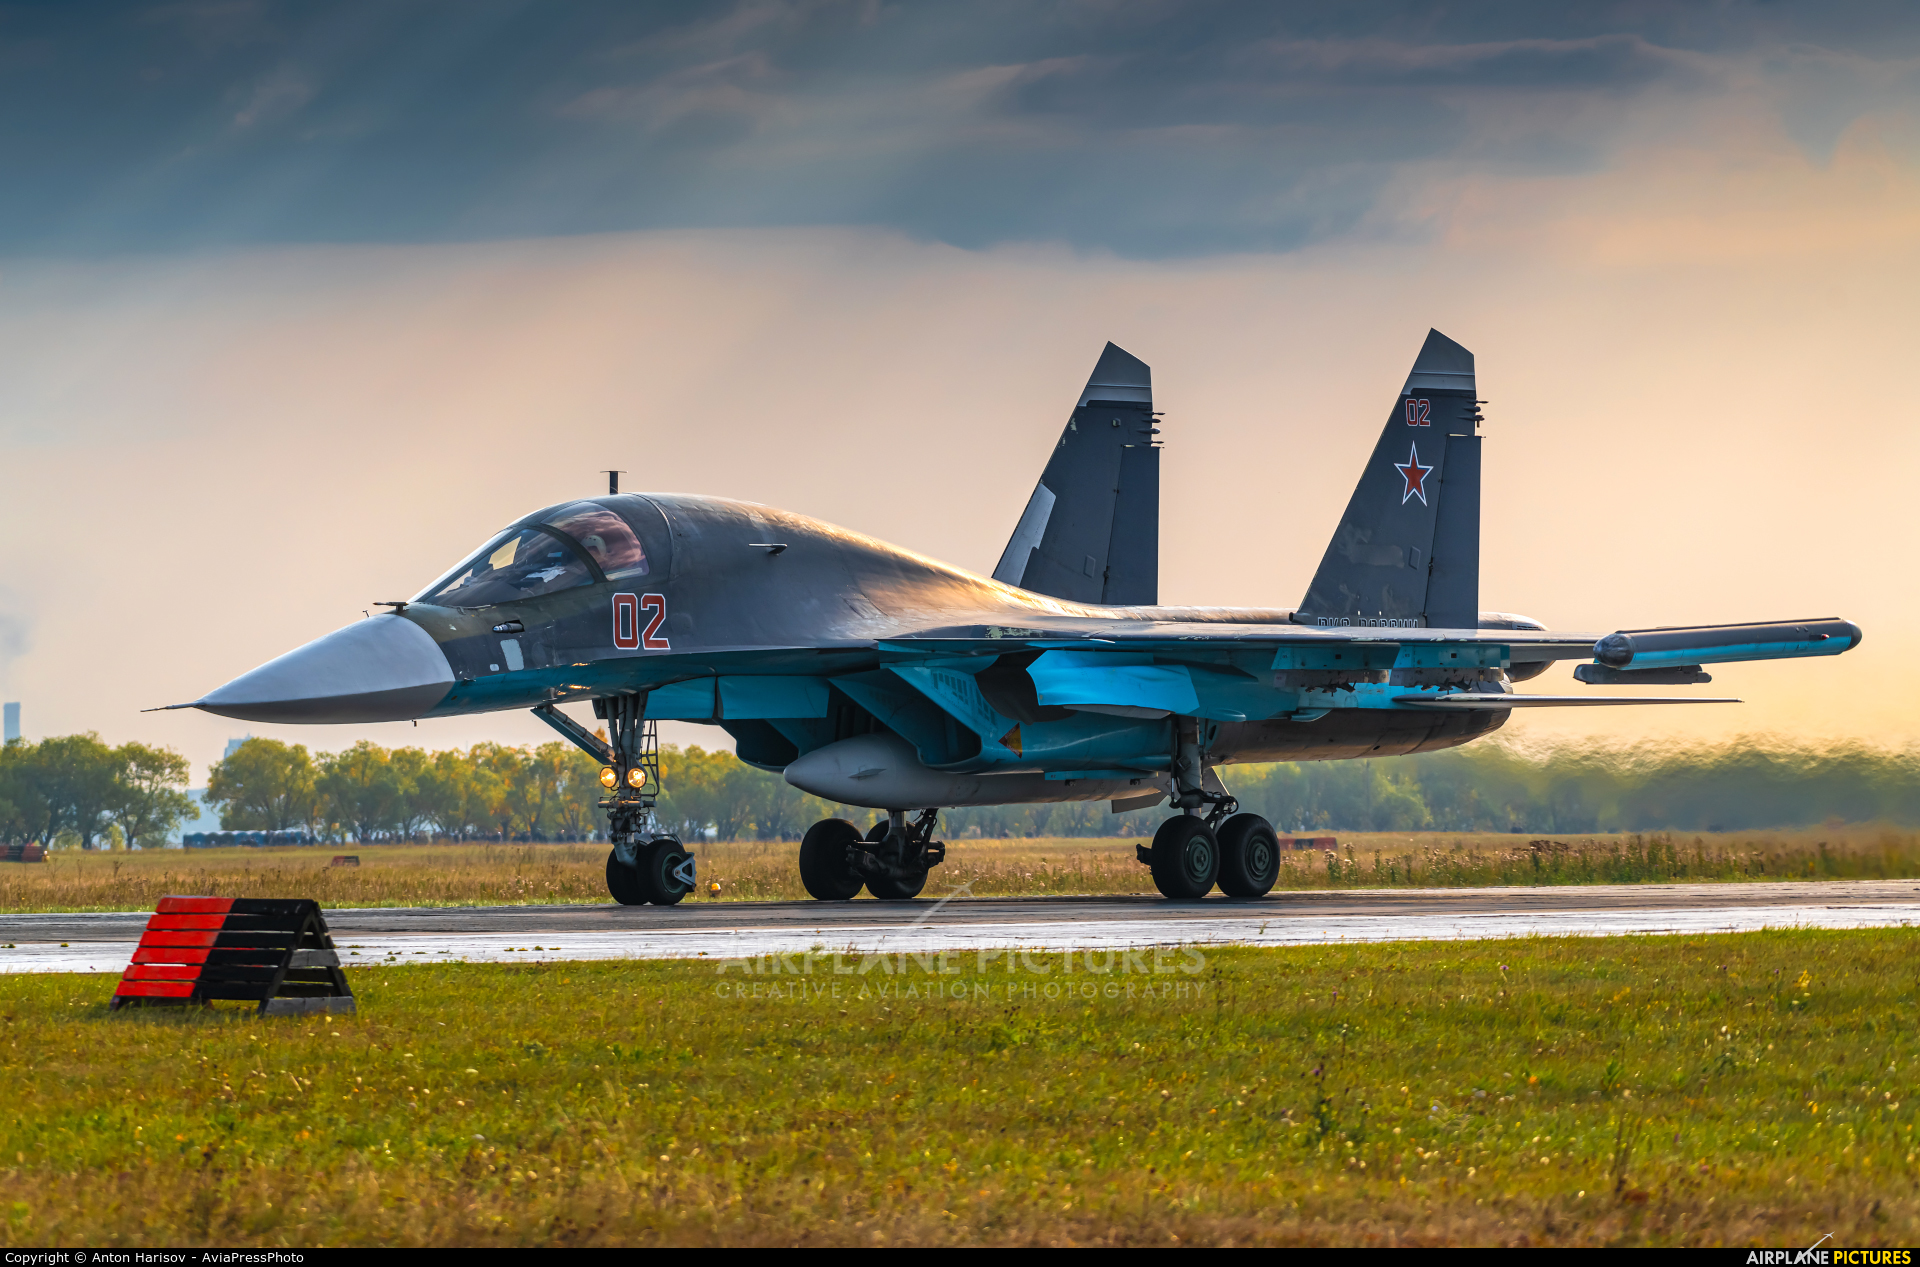 Russia - Air Force 02 aircraft at Undisclosed Location